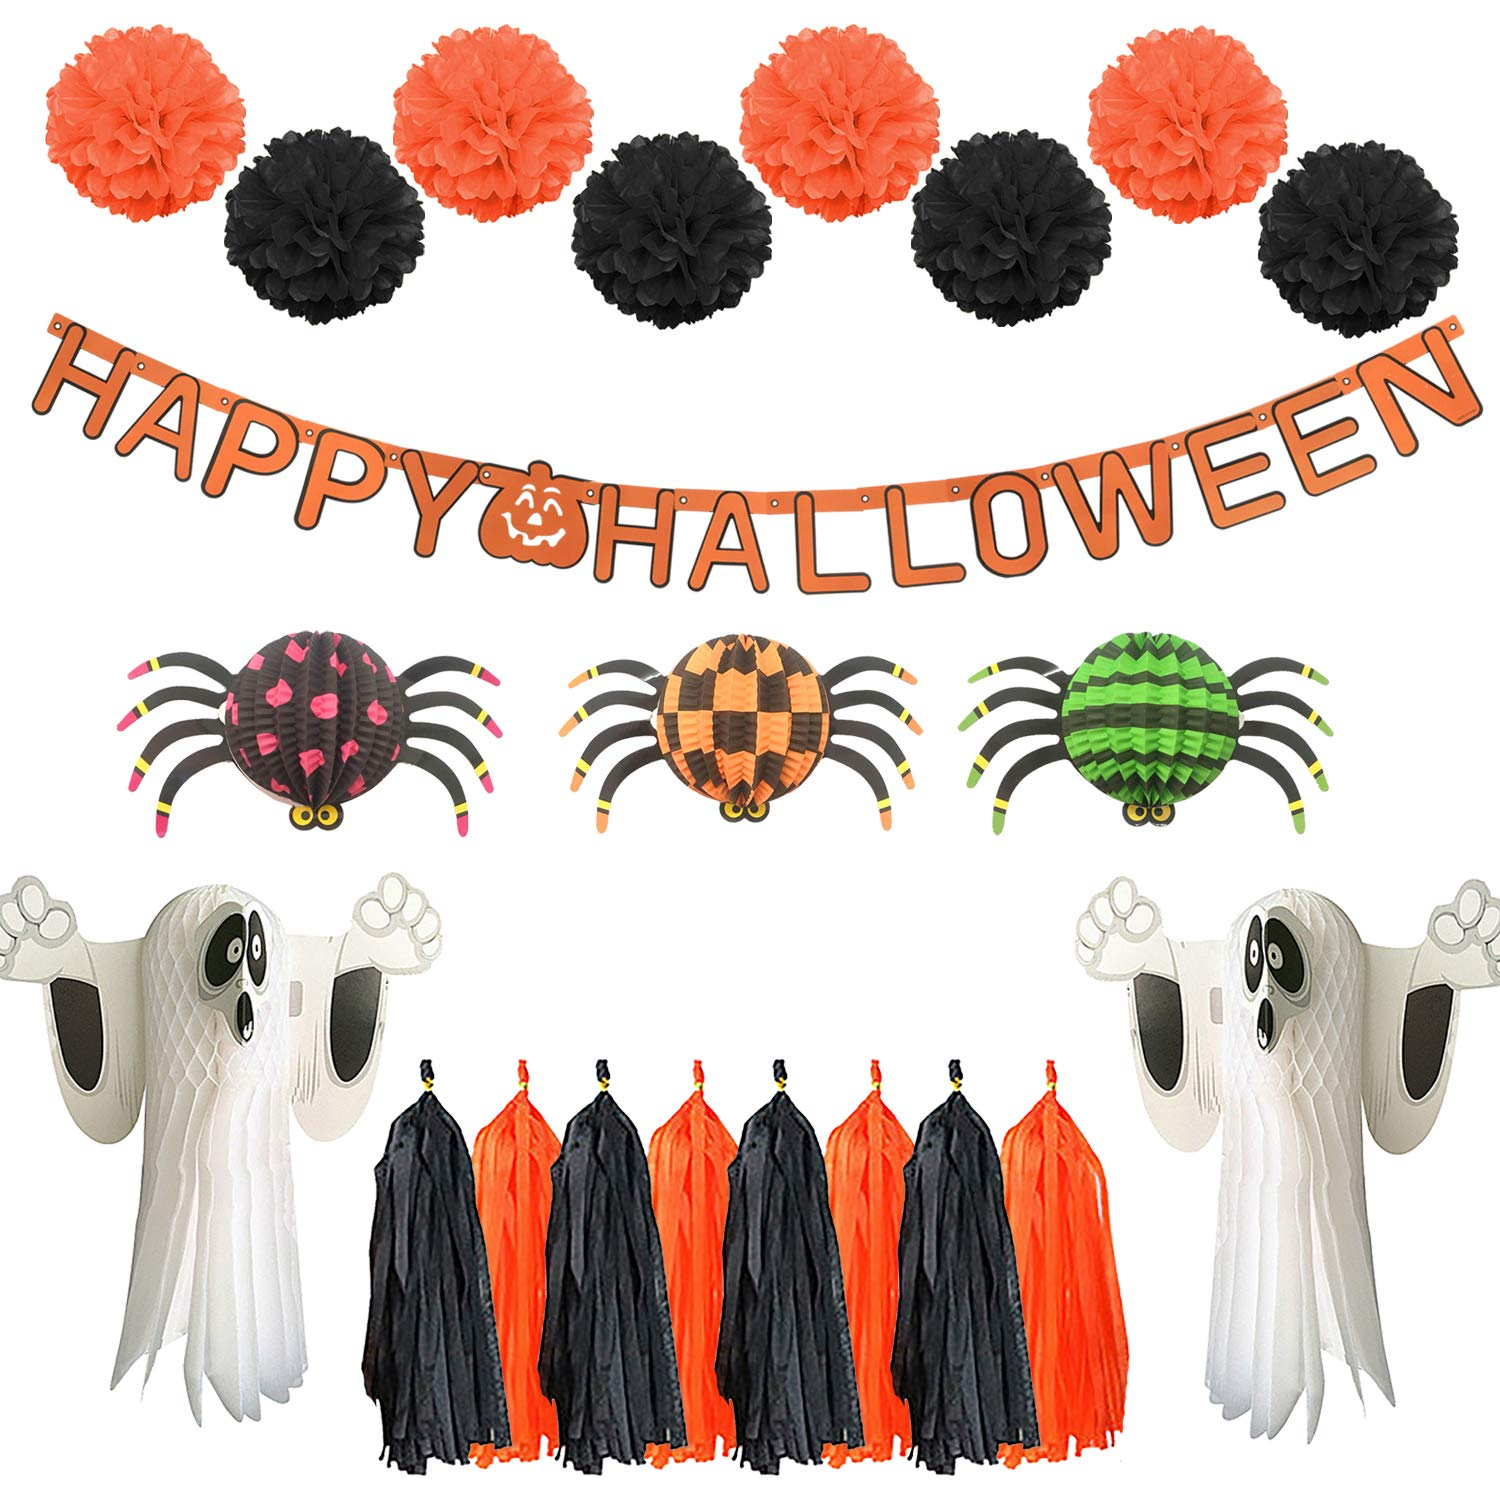 CDM product Tuoyi Scare Halloween Party Decorations Kit - Halloween Party Hanging Paper Tassels with Paper Pom Poms,Ghosts,Spiders and Happy Halloween Banners Set 34Pcs big image